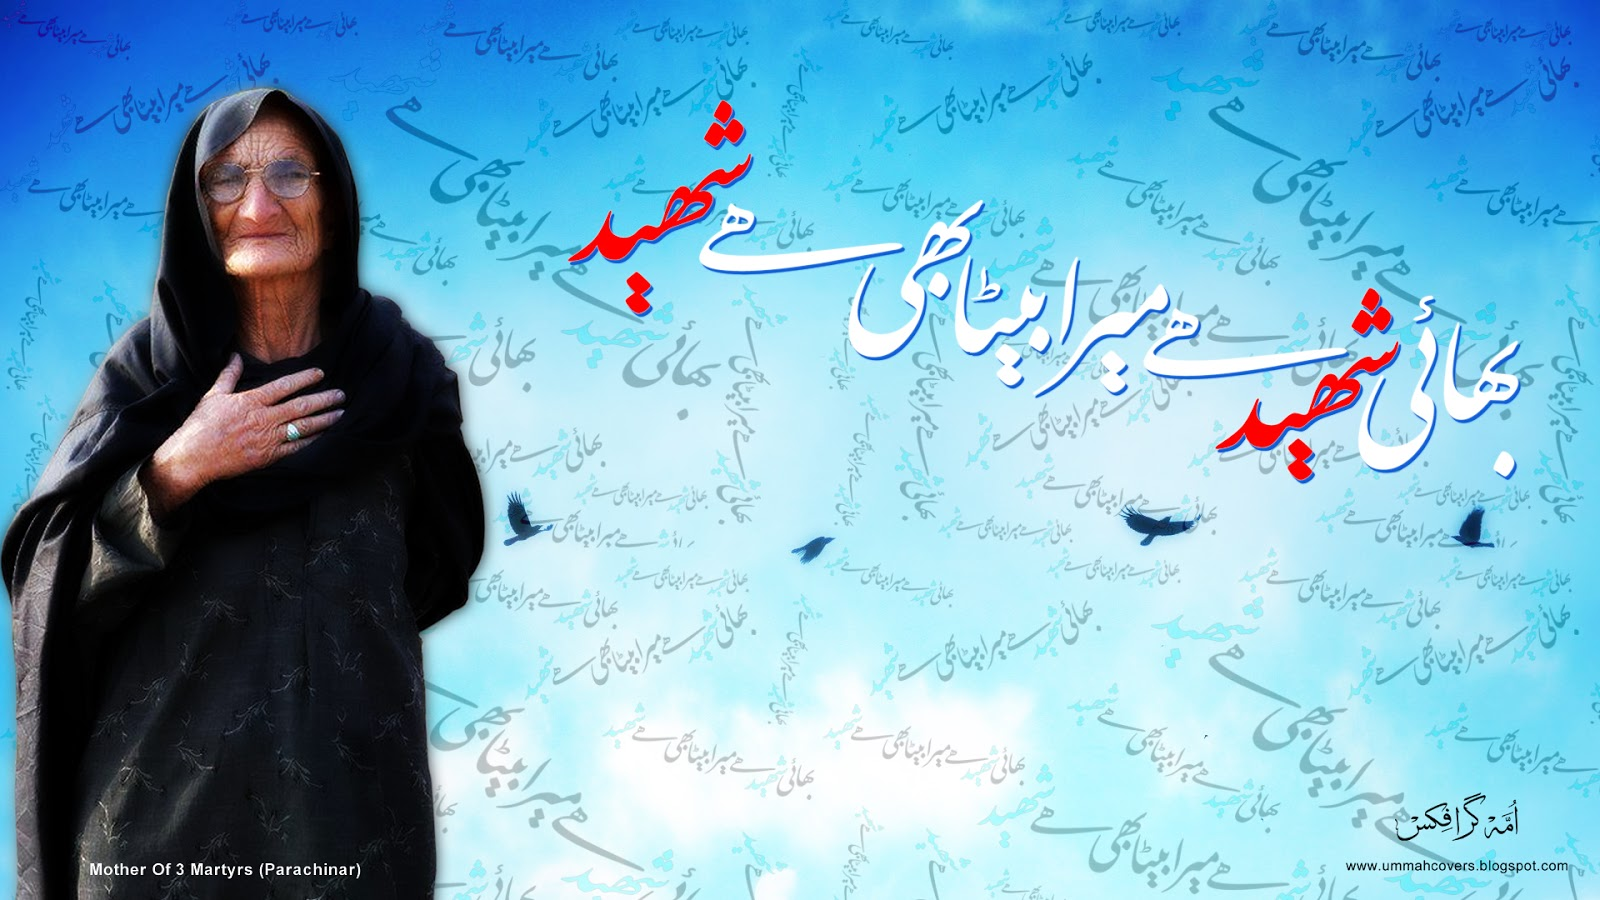 A Beautiful Wallpaper Of Imam Hussain Ya Hussain Ibne Ali as With Roza Mubarak Please read our Disclaimer f